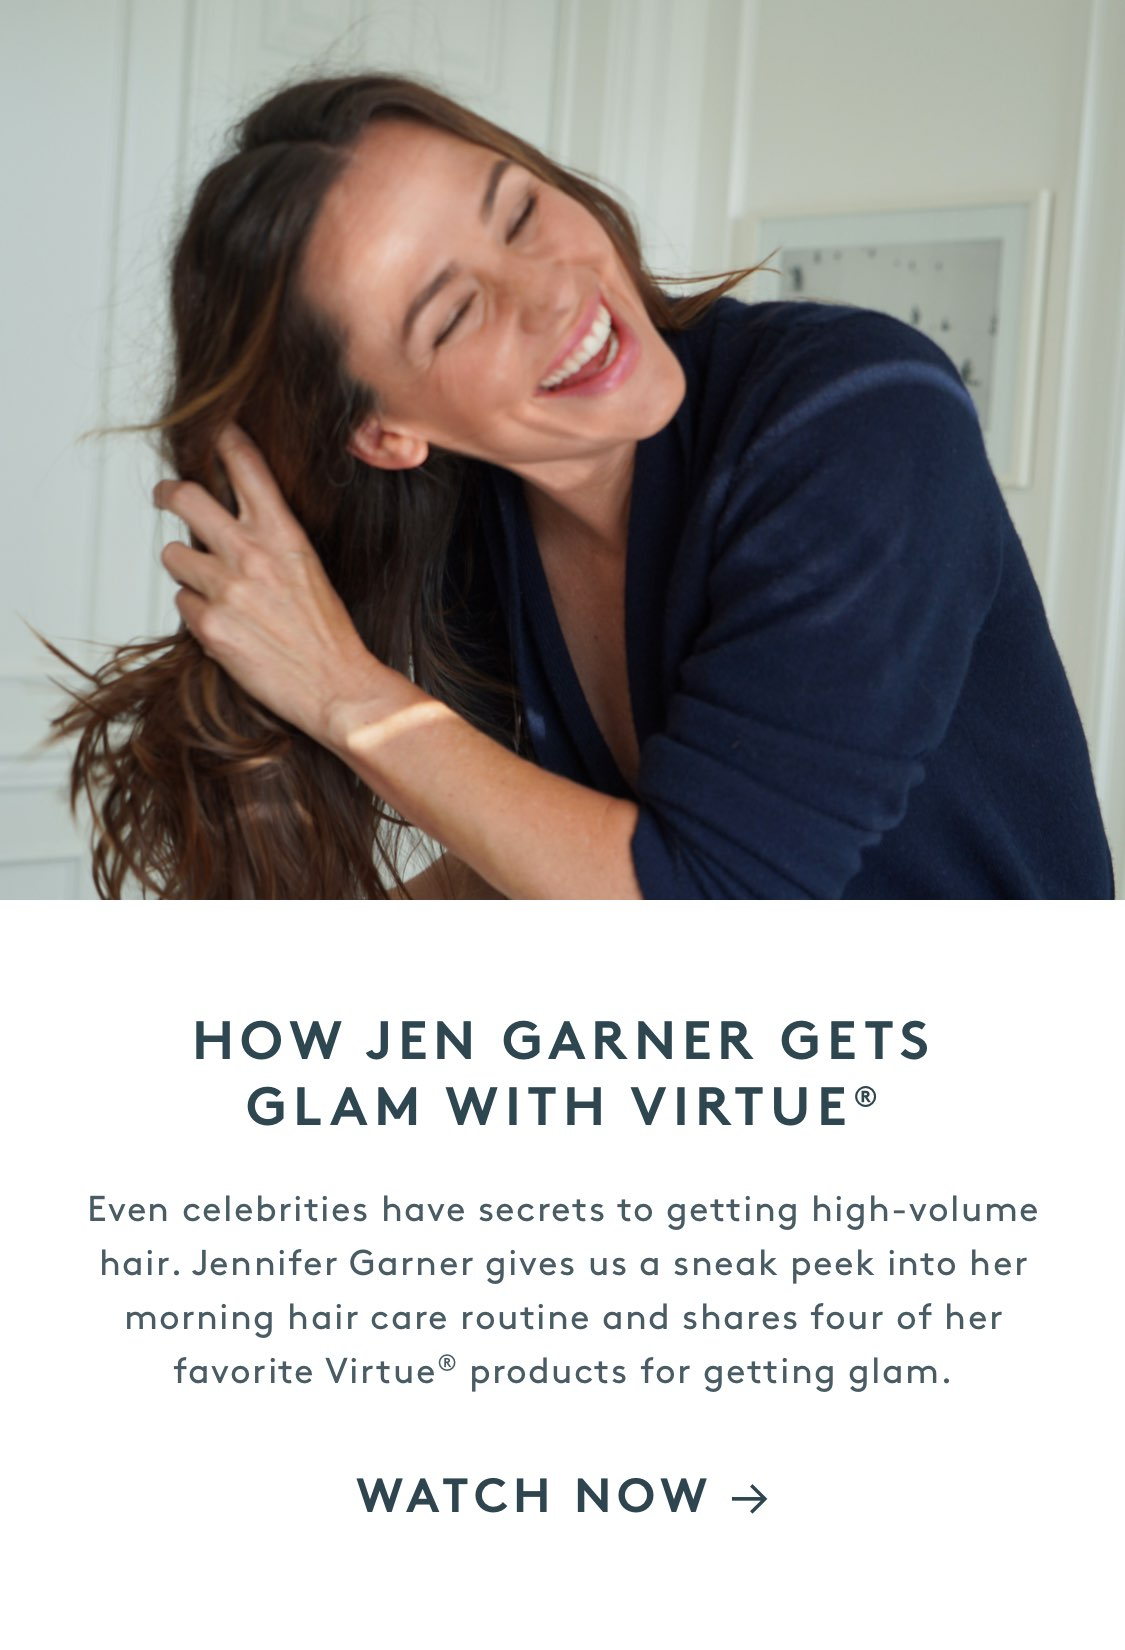 How Jen Garner Gets Glam With Virtue®